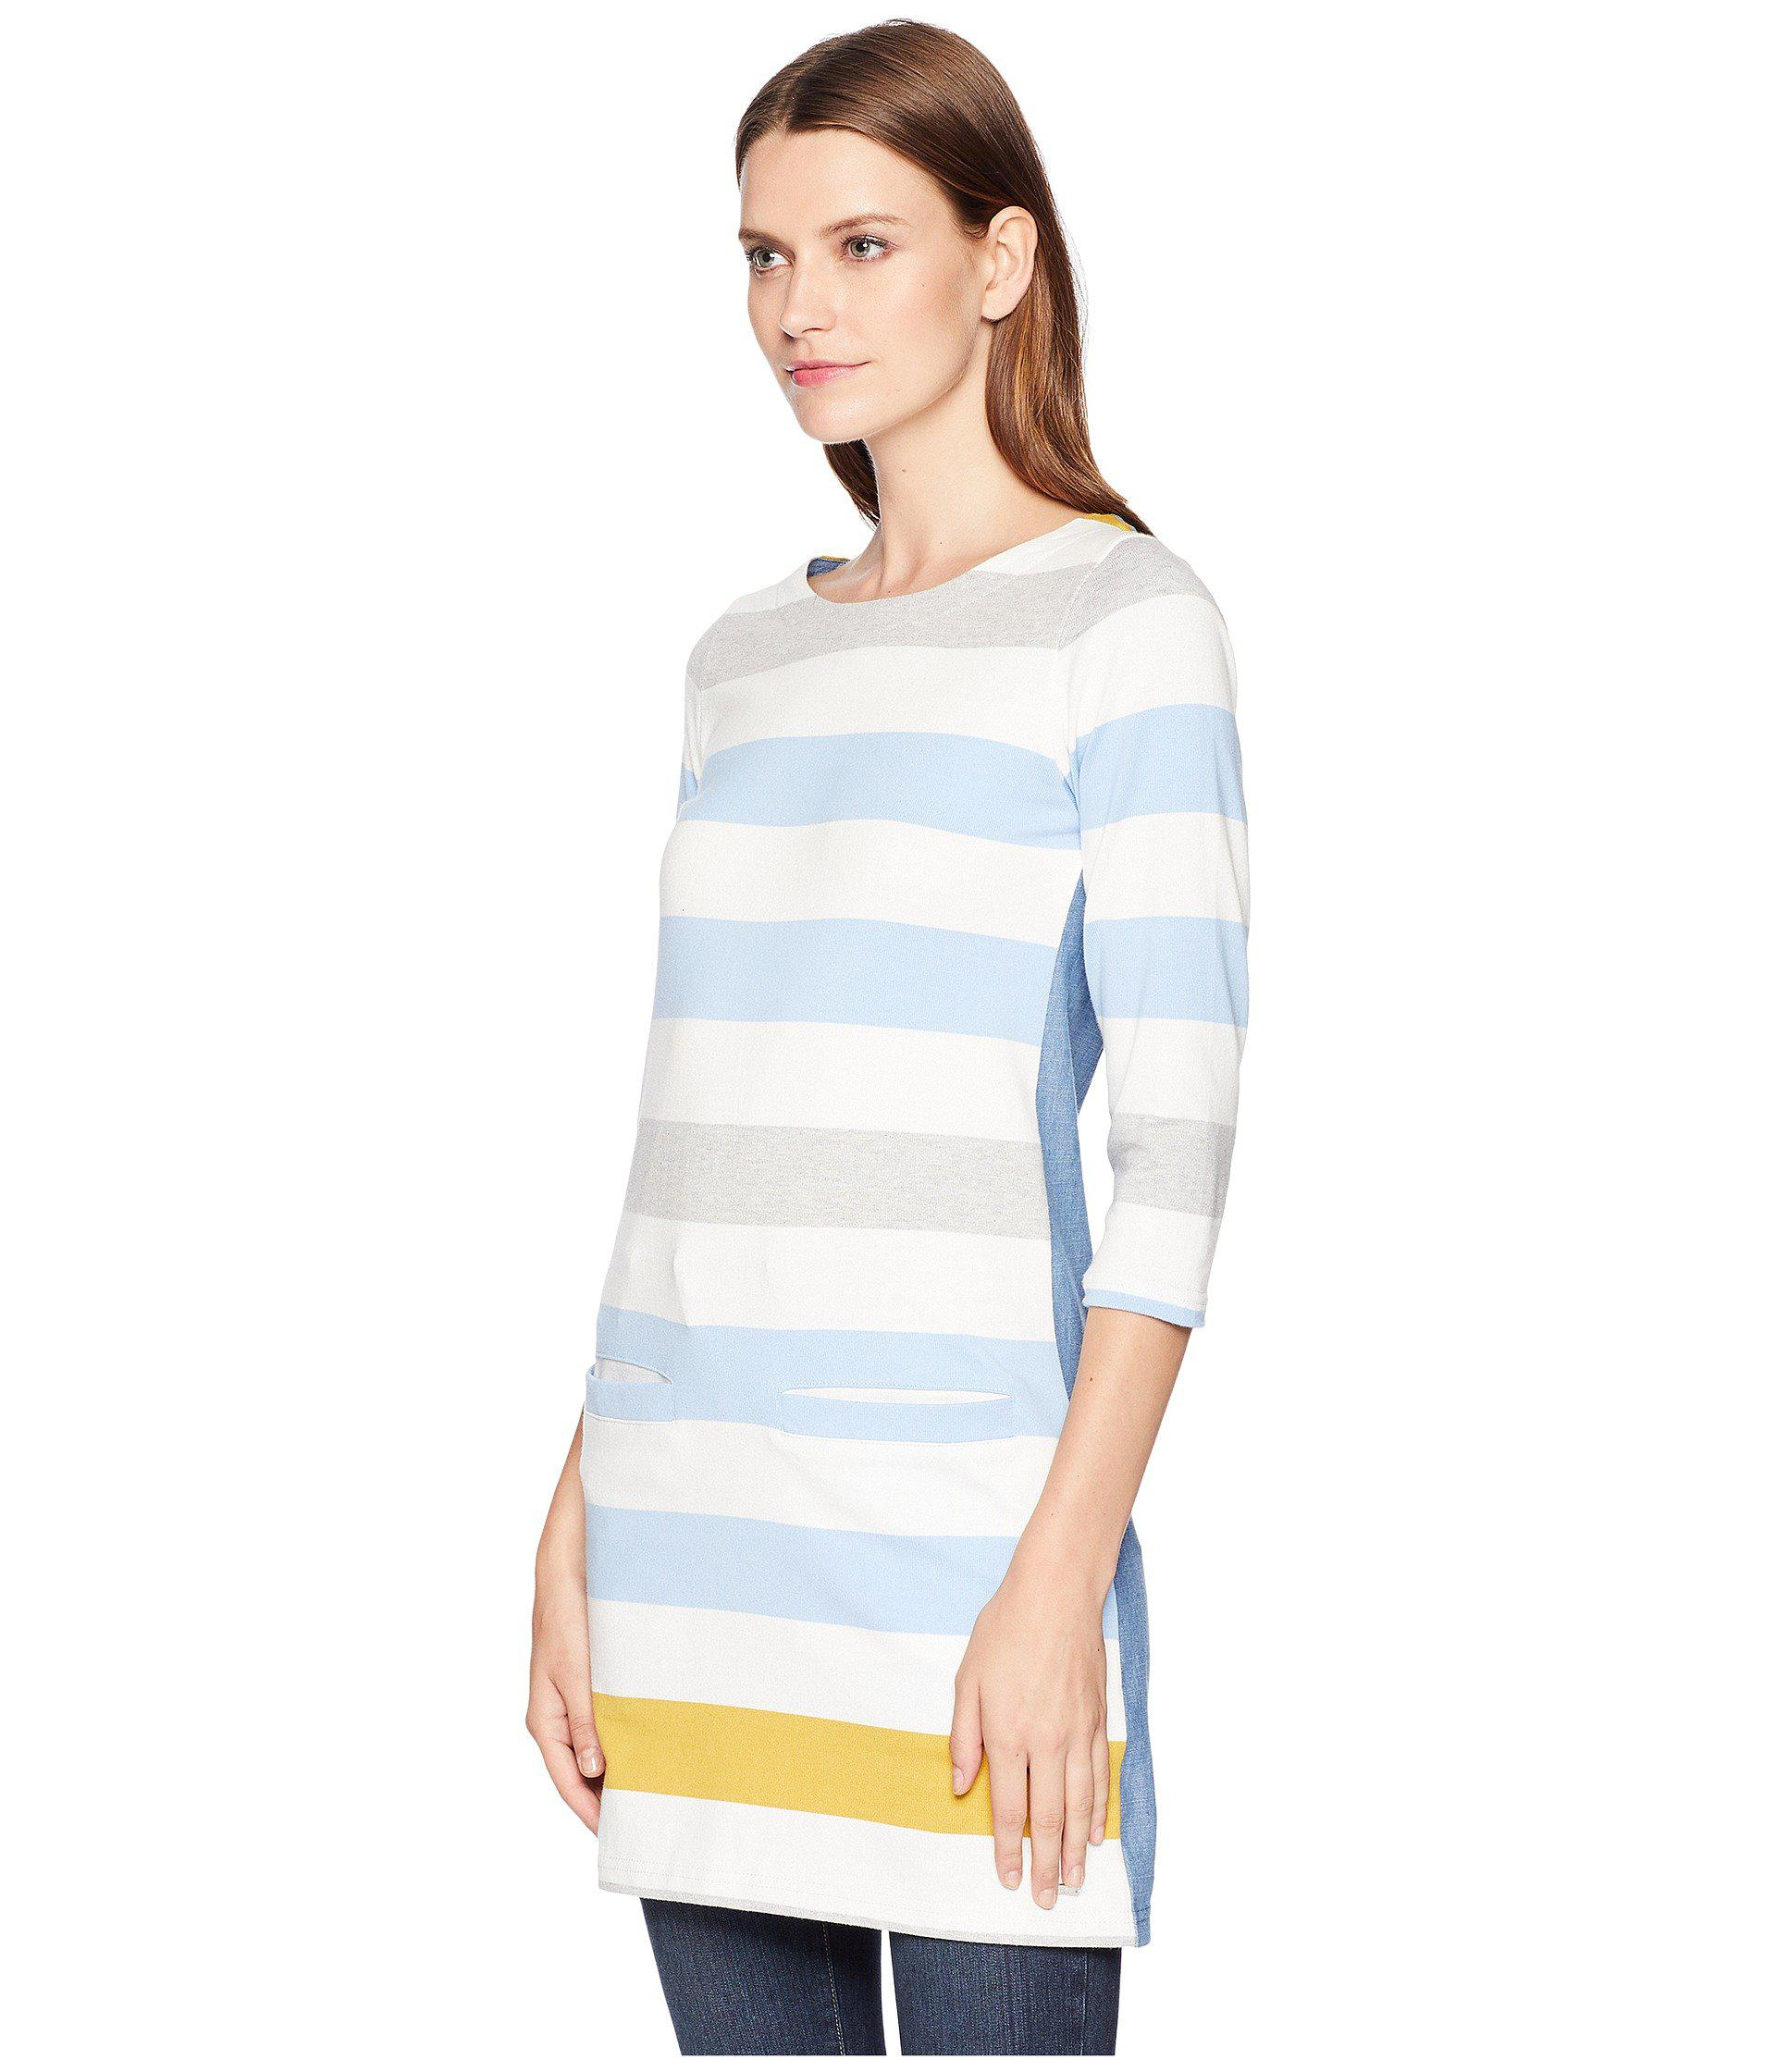 739a84878a8 Lyst - Joules Jade Jersey/woven Mix Tunic (blue Gold Bold Stripe ...